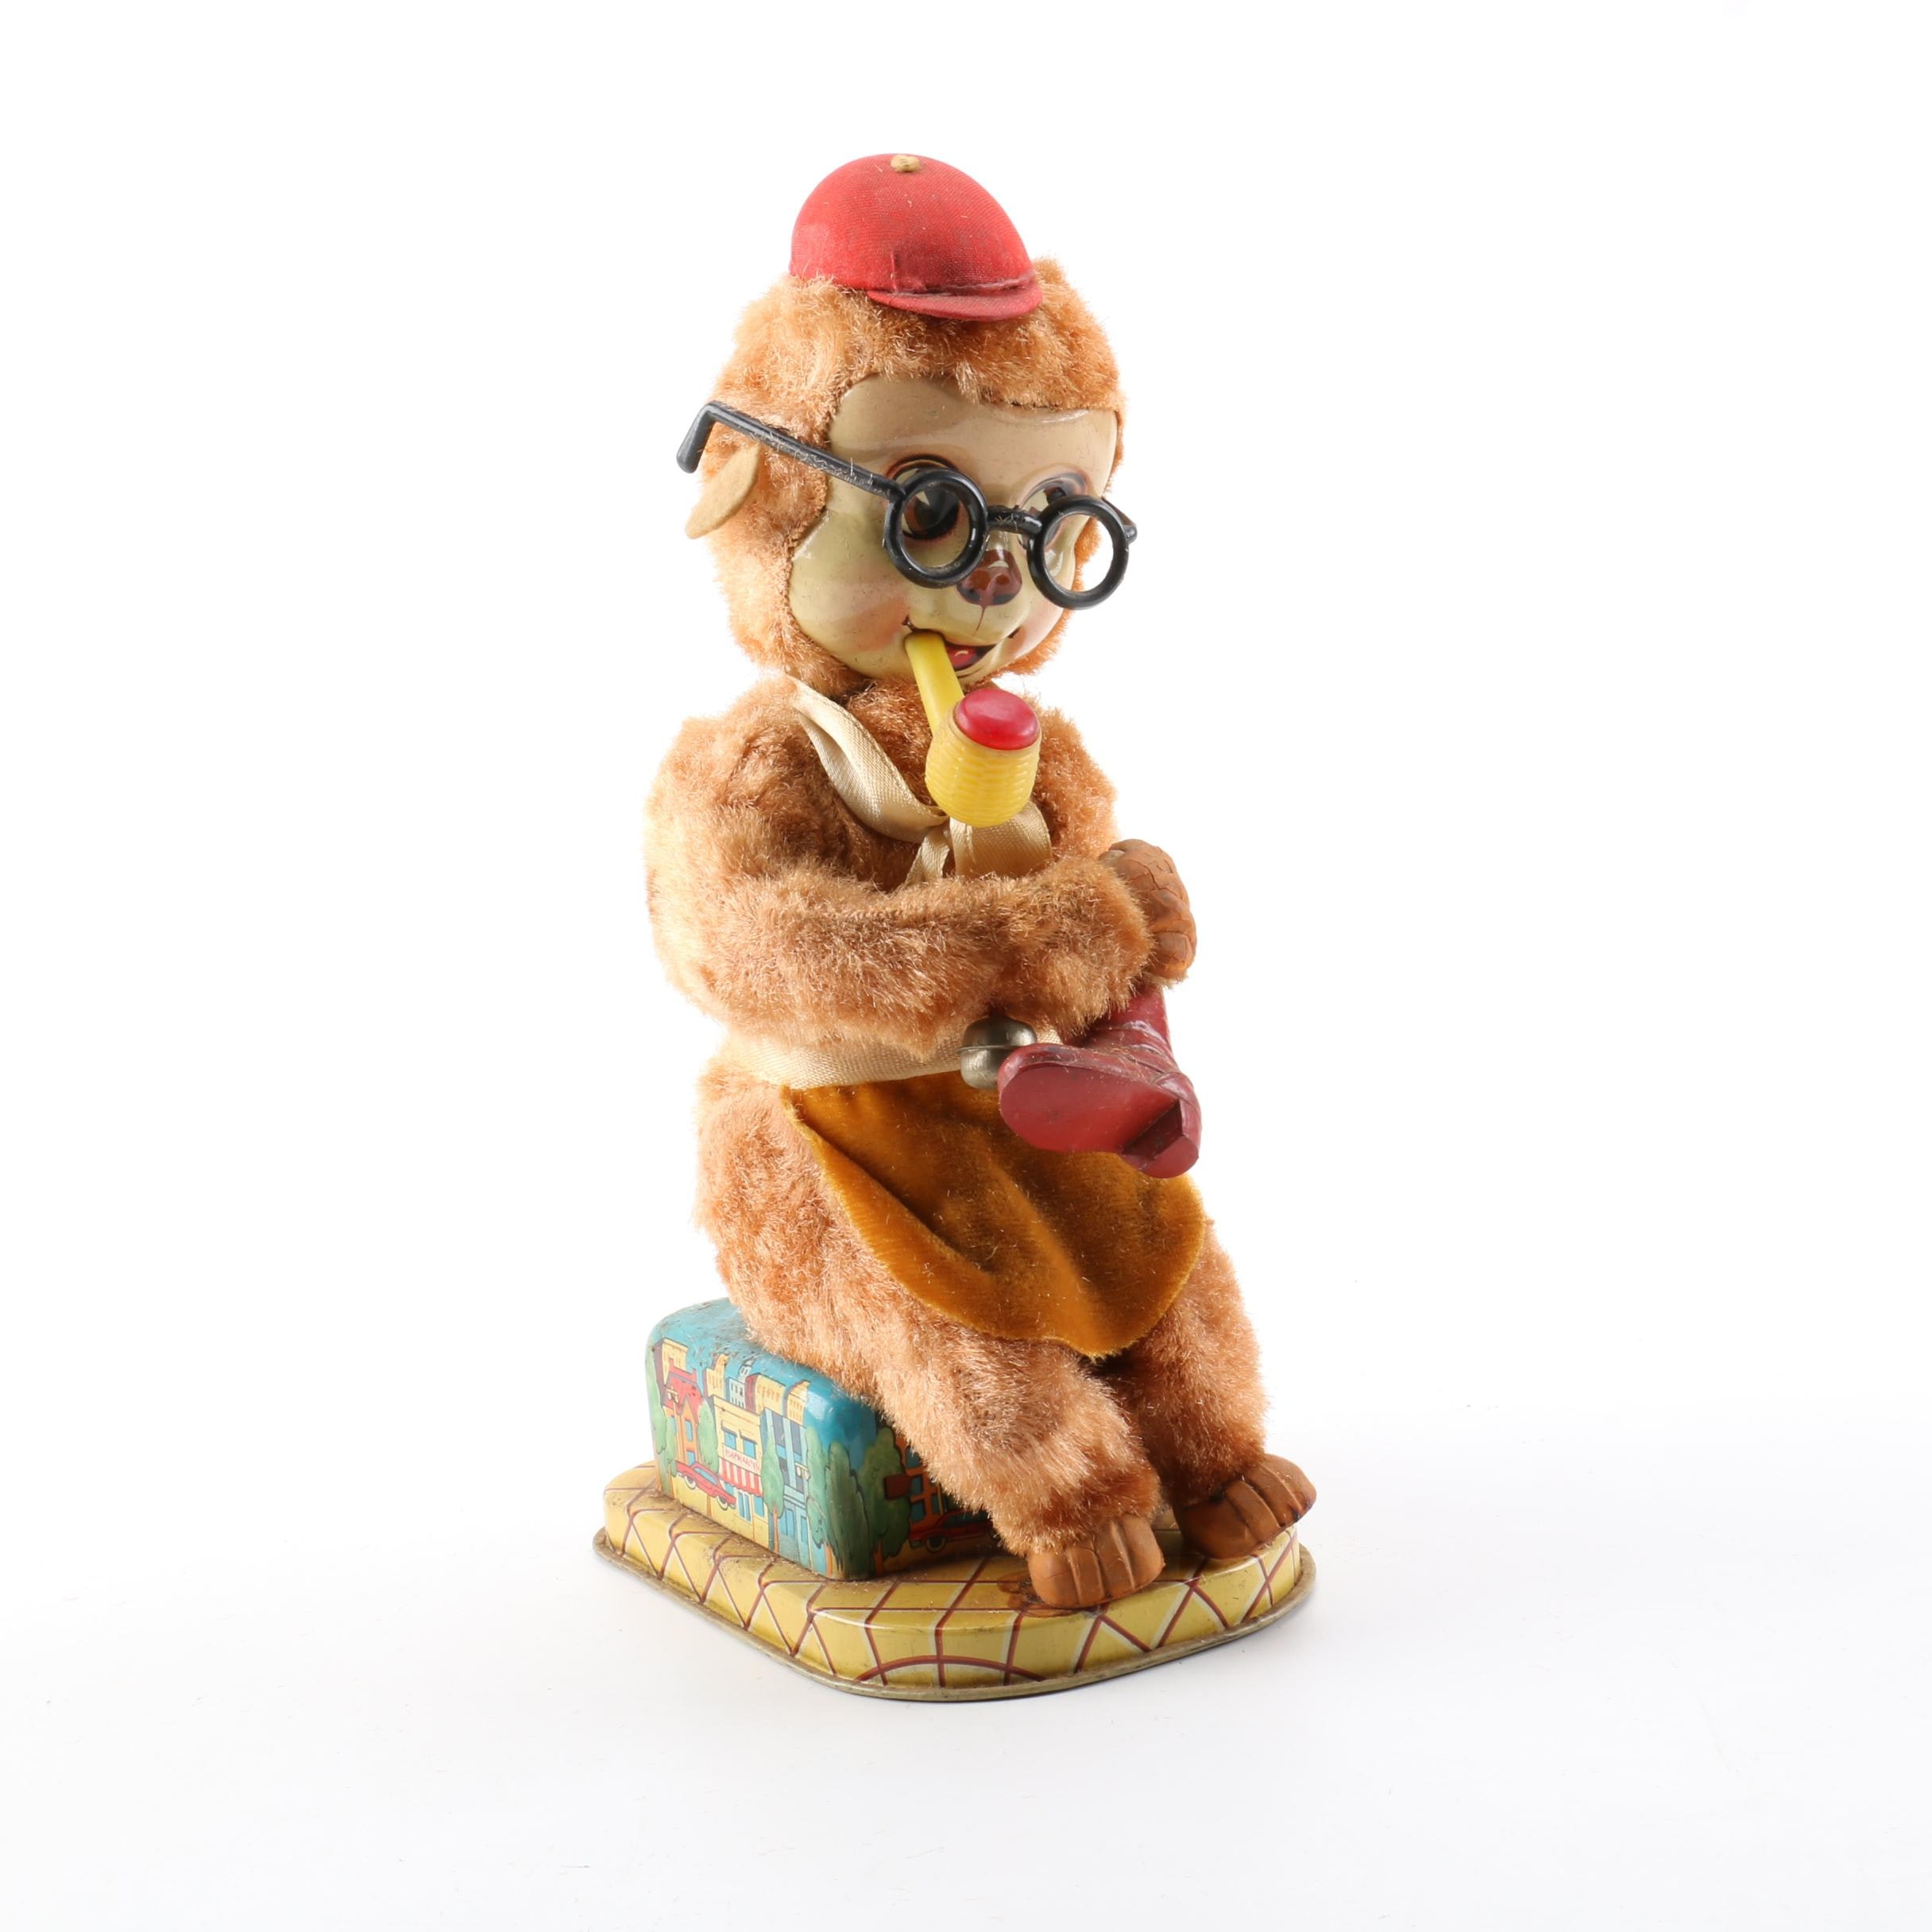 1950s Shoe Shine Joe Battery-Operated Toy Monkey